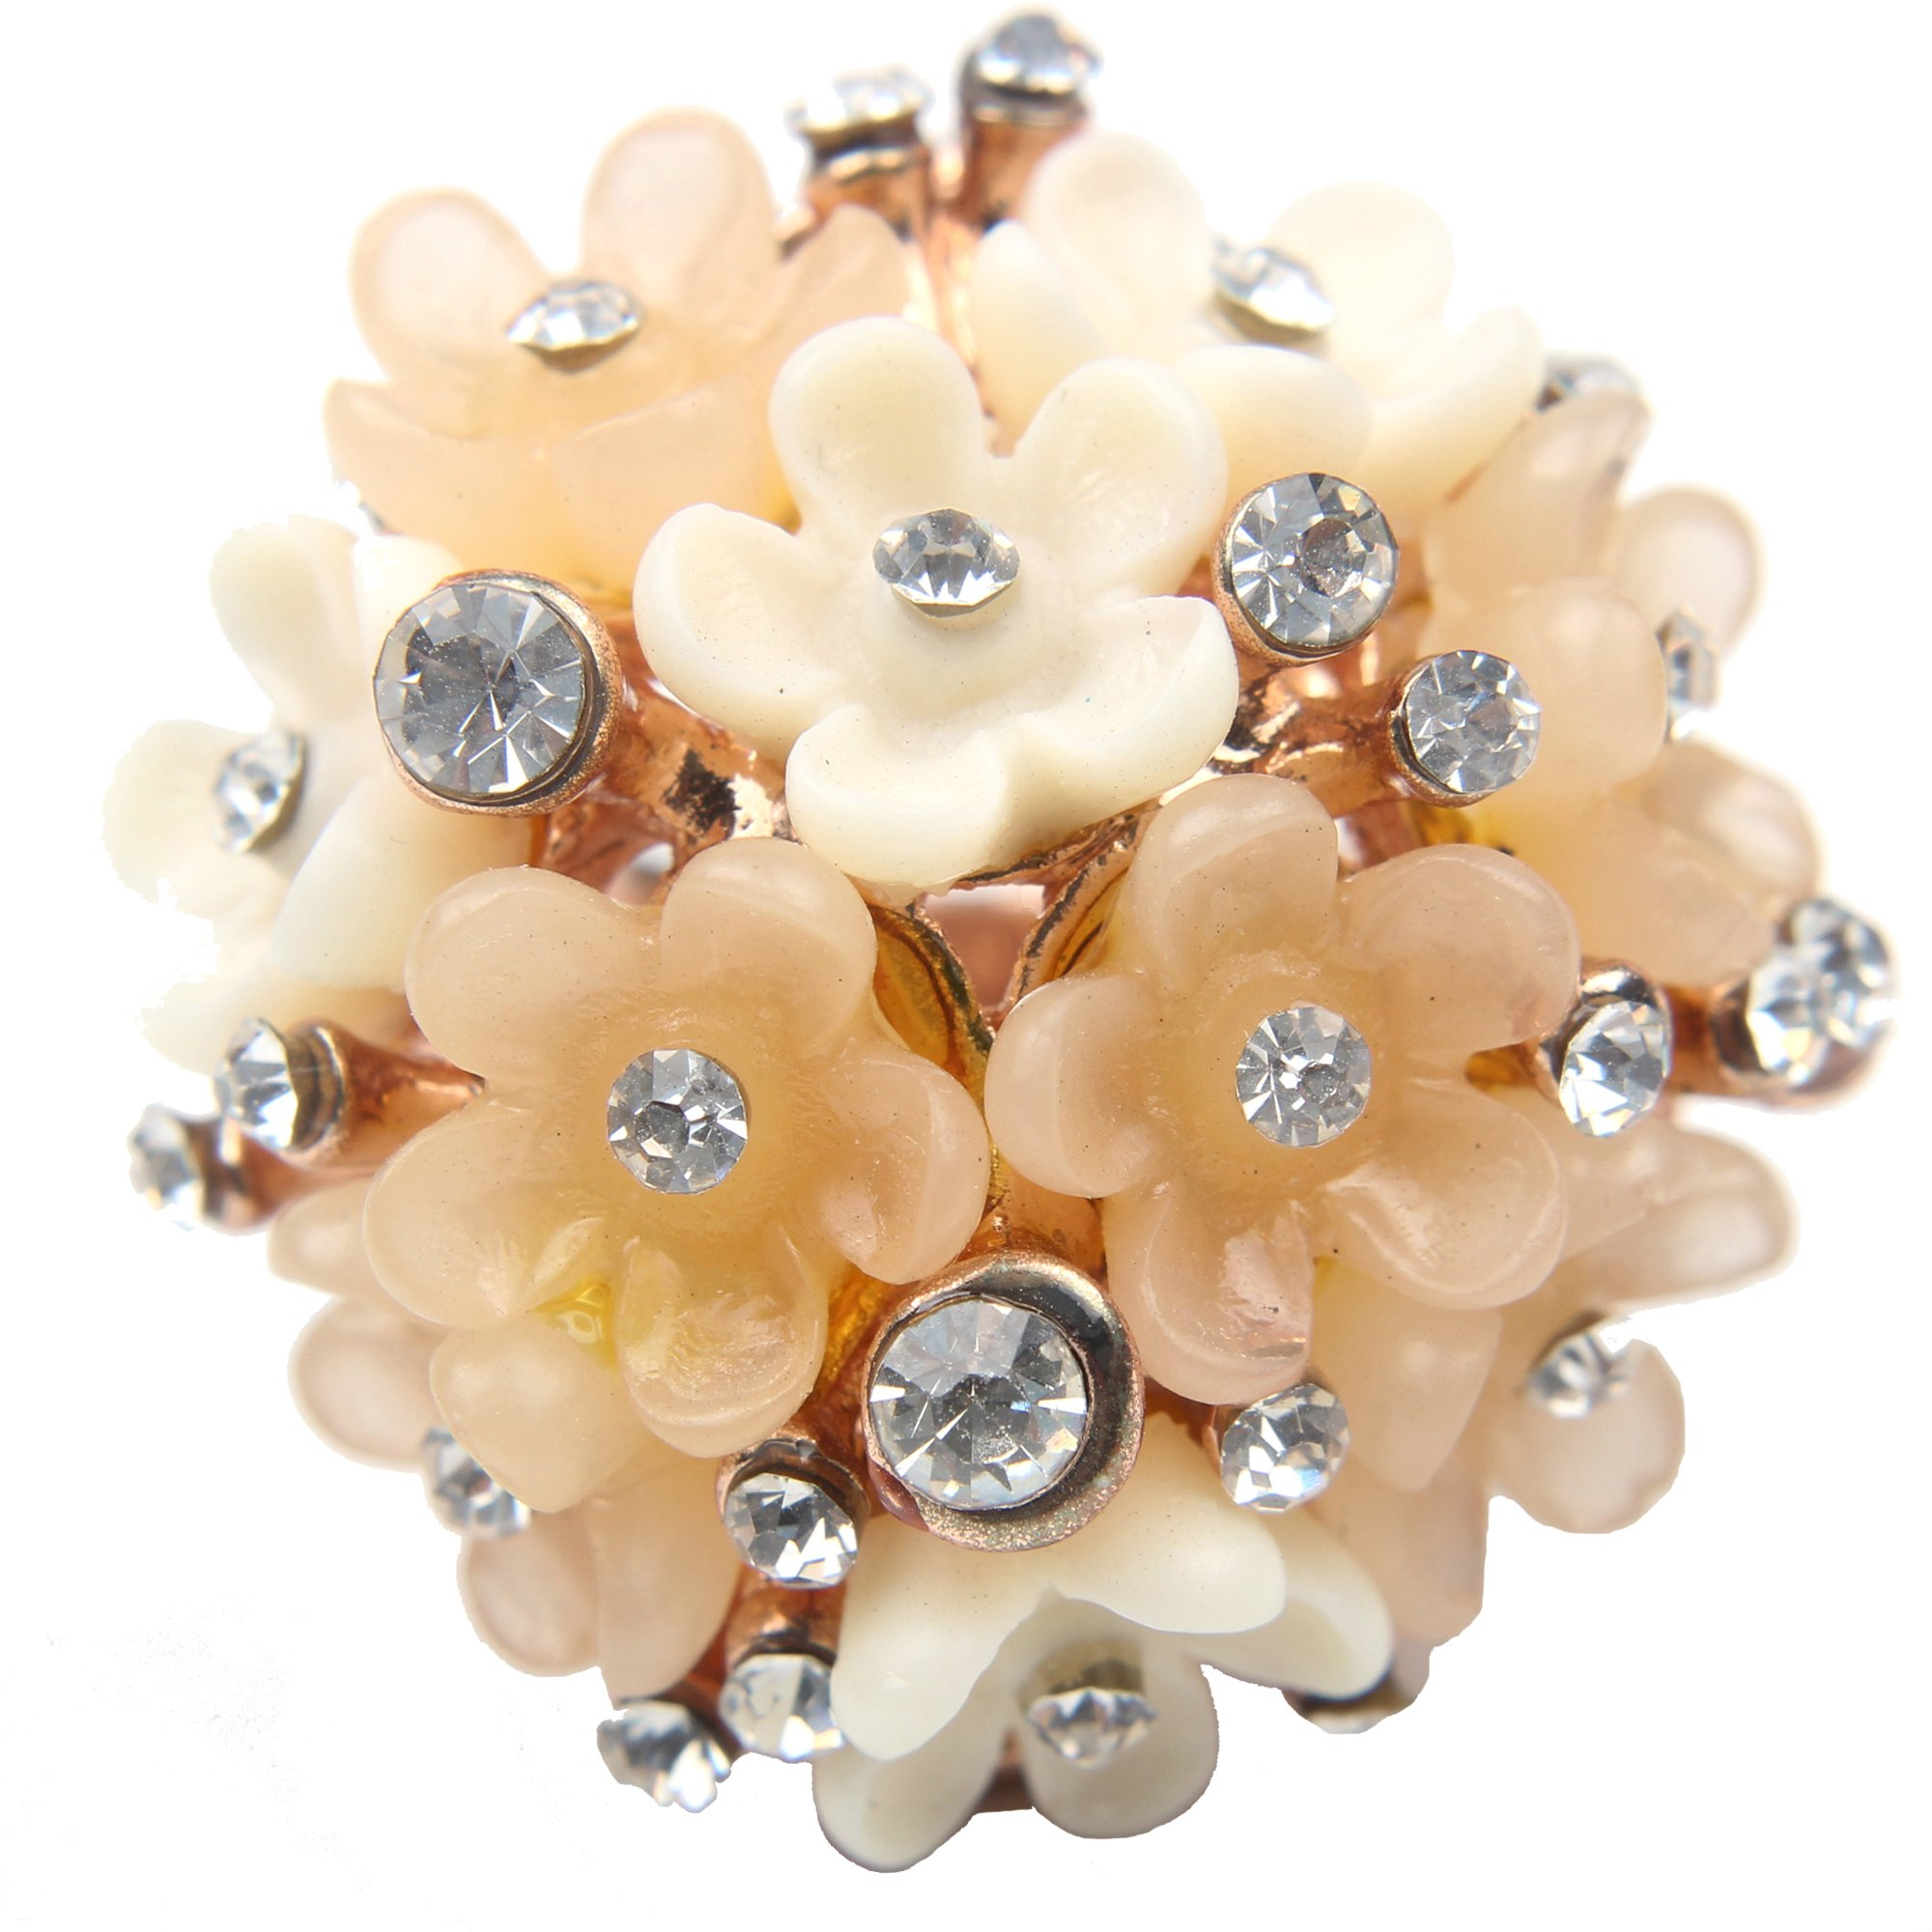 Claire Jin Champagne Rhinestone Resin Flower Ring Fashion Plated 18k Gold Jewelry Big Statement Rings for Women (9)